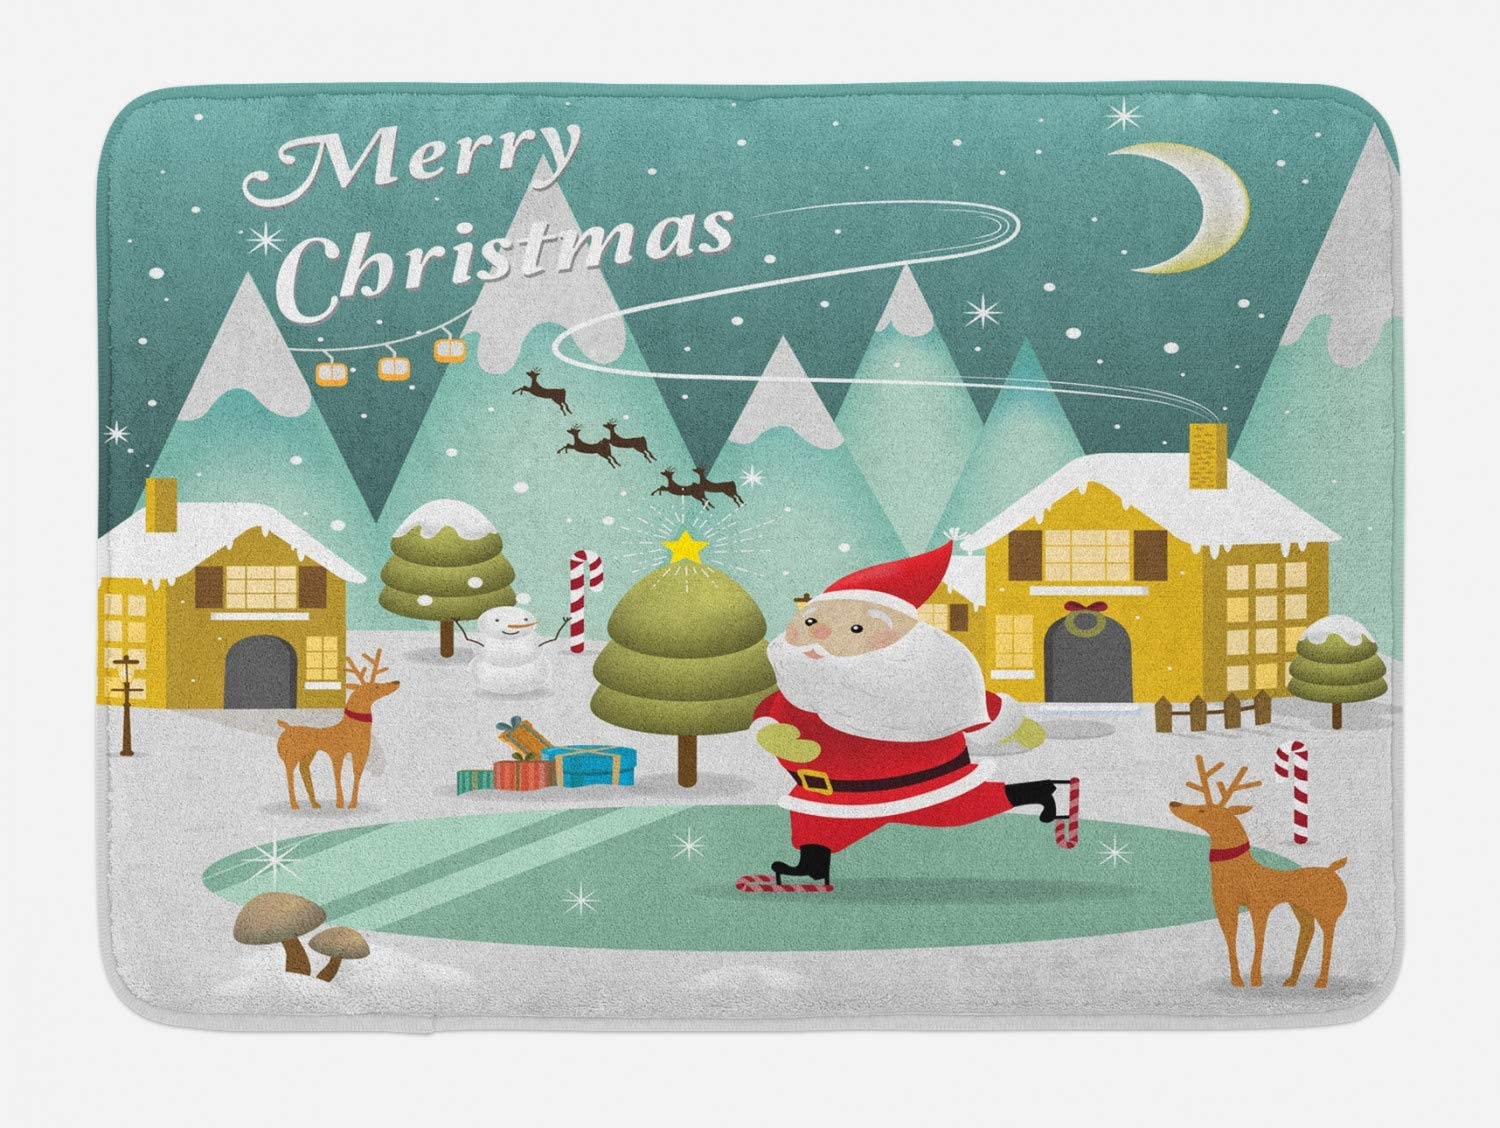 Lunarable Merry Christmas Bath Mat, Snowy Xmas Scene Doodle Ice Skating Santa Reindeer Gift Boxes Print, Plush Bathroom Decor Mat with Non Slip Backing, 29.5